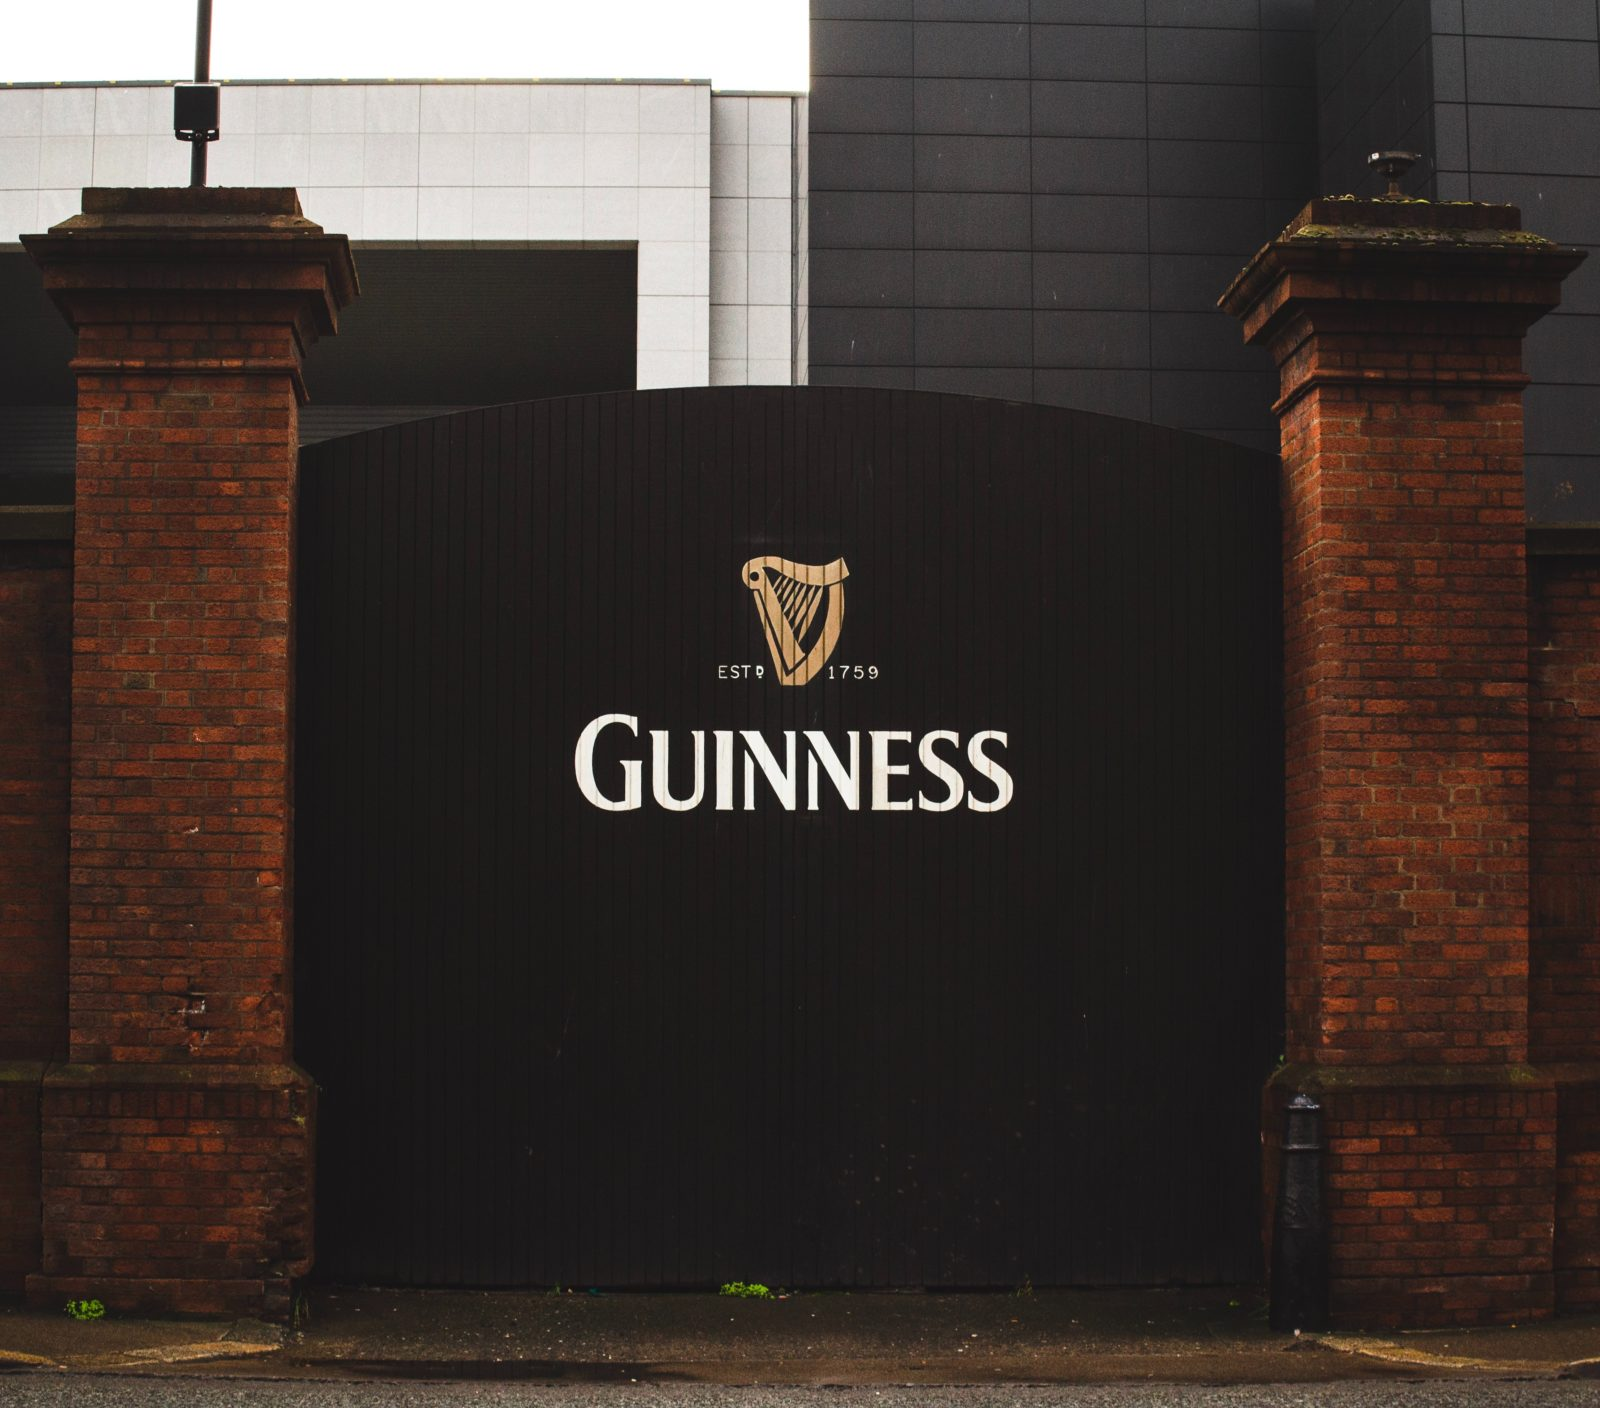 Southern CA Video Team Discuss The Guinness Beer Company